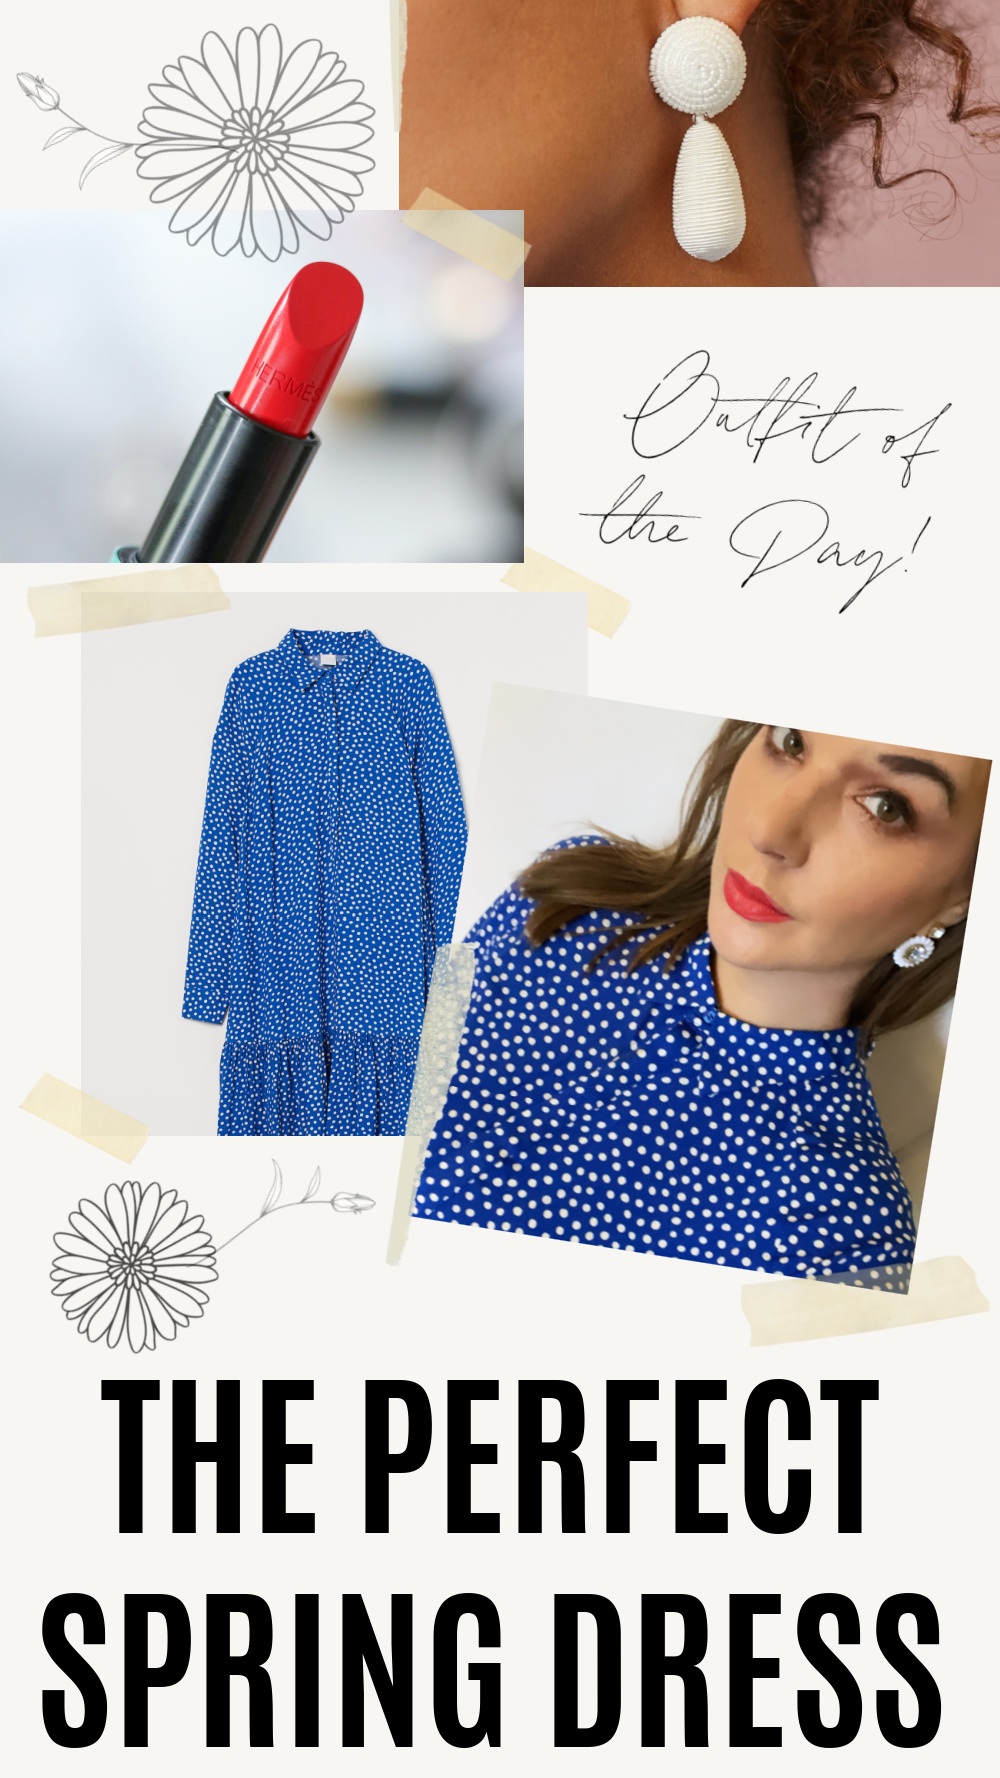 Perfect Spring Dress I Blue Polka Dot Midi Dress from HM Conscious Collection #ootdstyle #fashionstyle #springoutfit